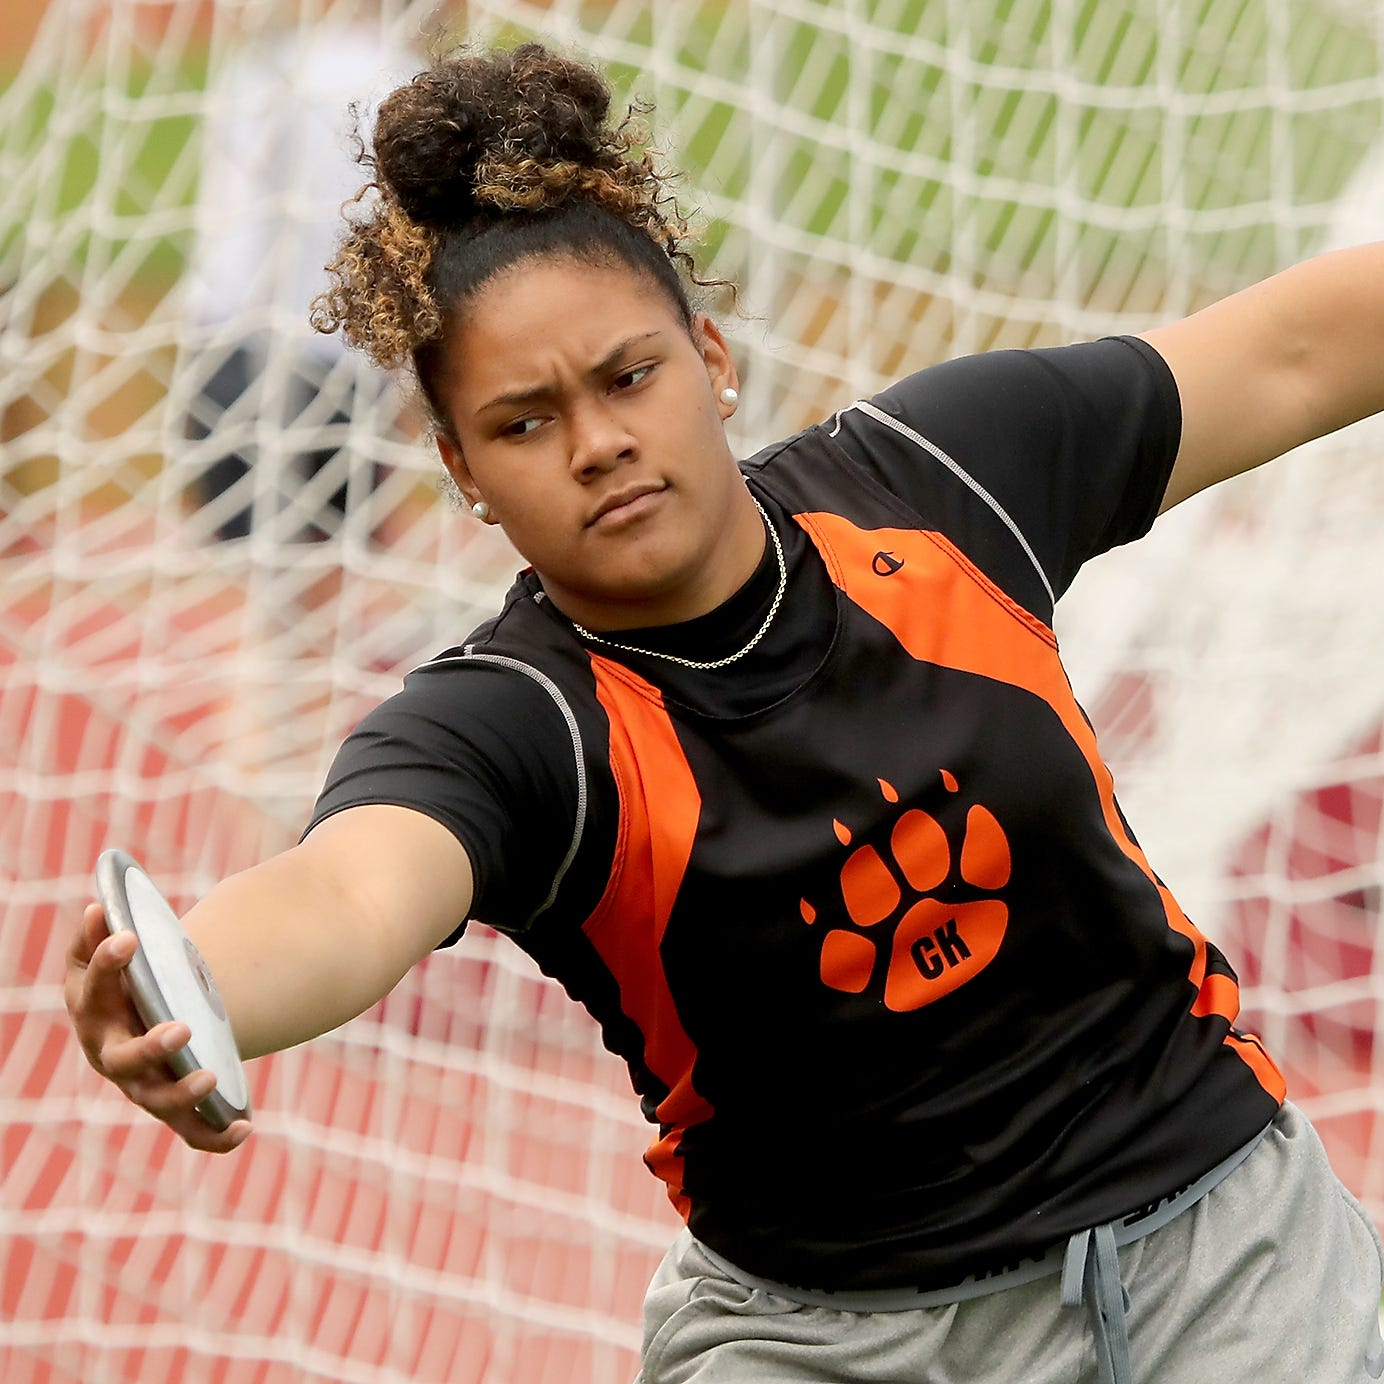 Central Kitsap's Fuiava a championship contender at state track and field meet